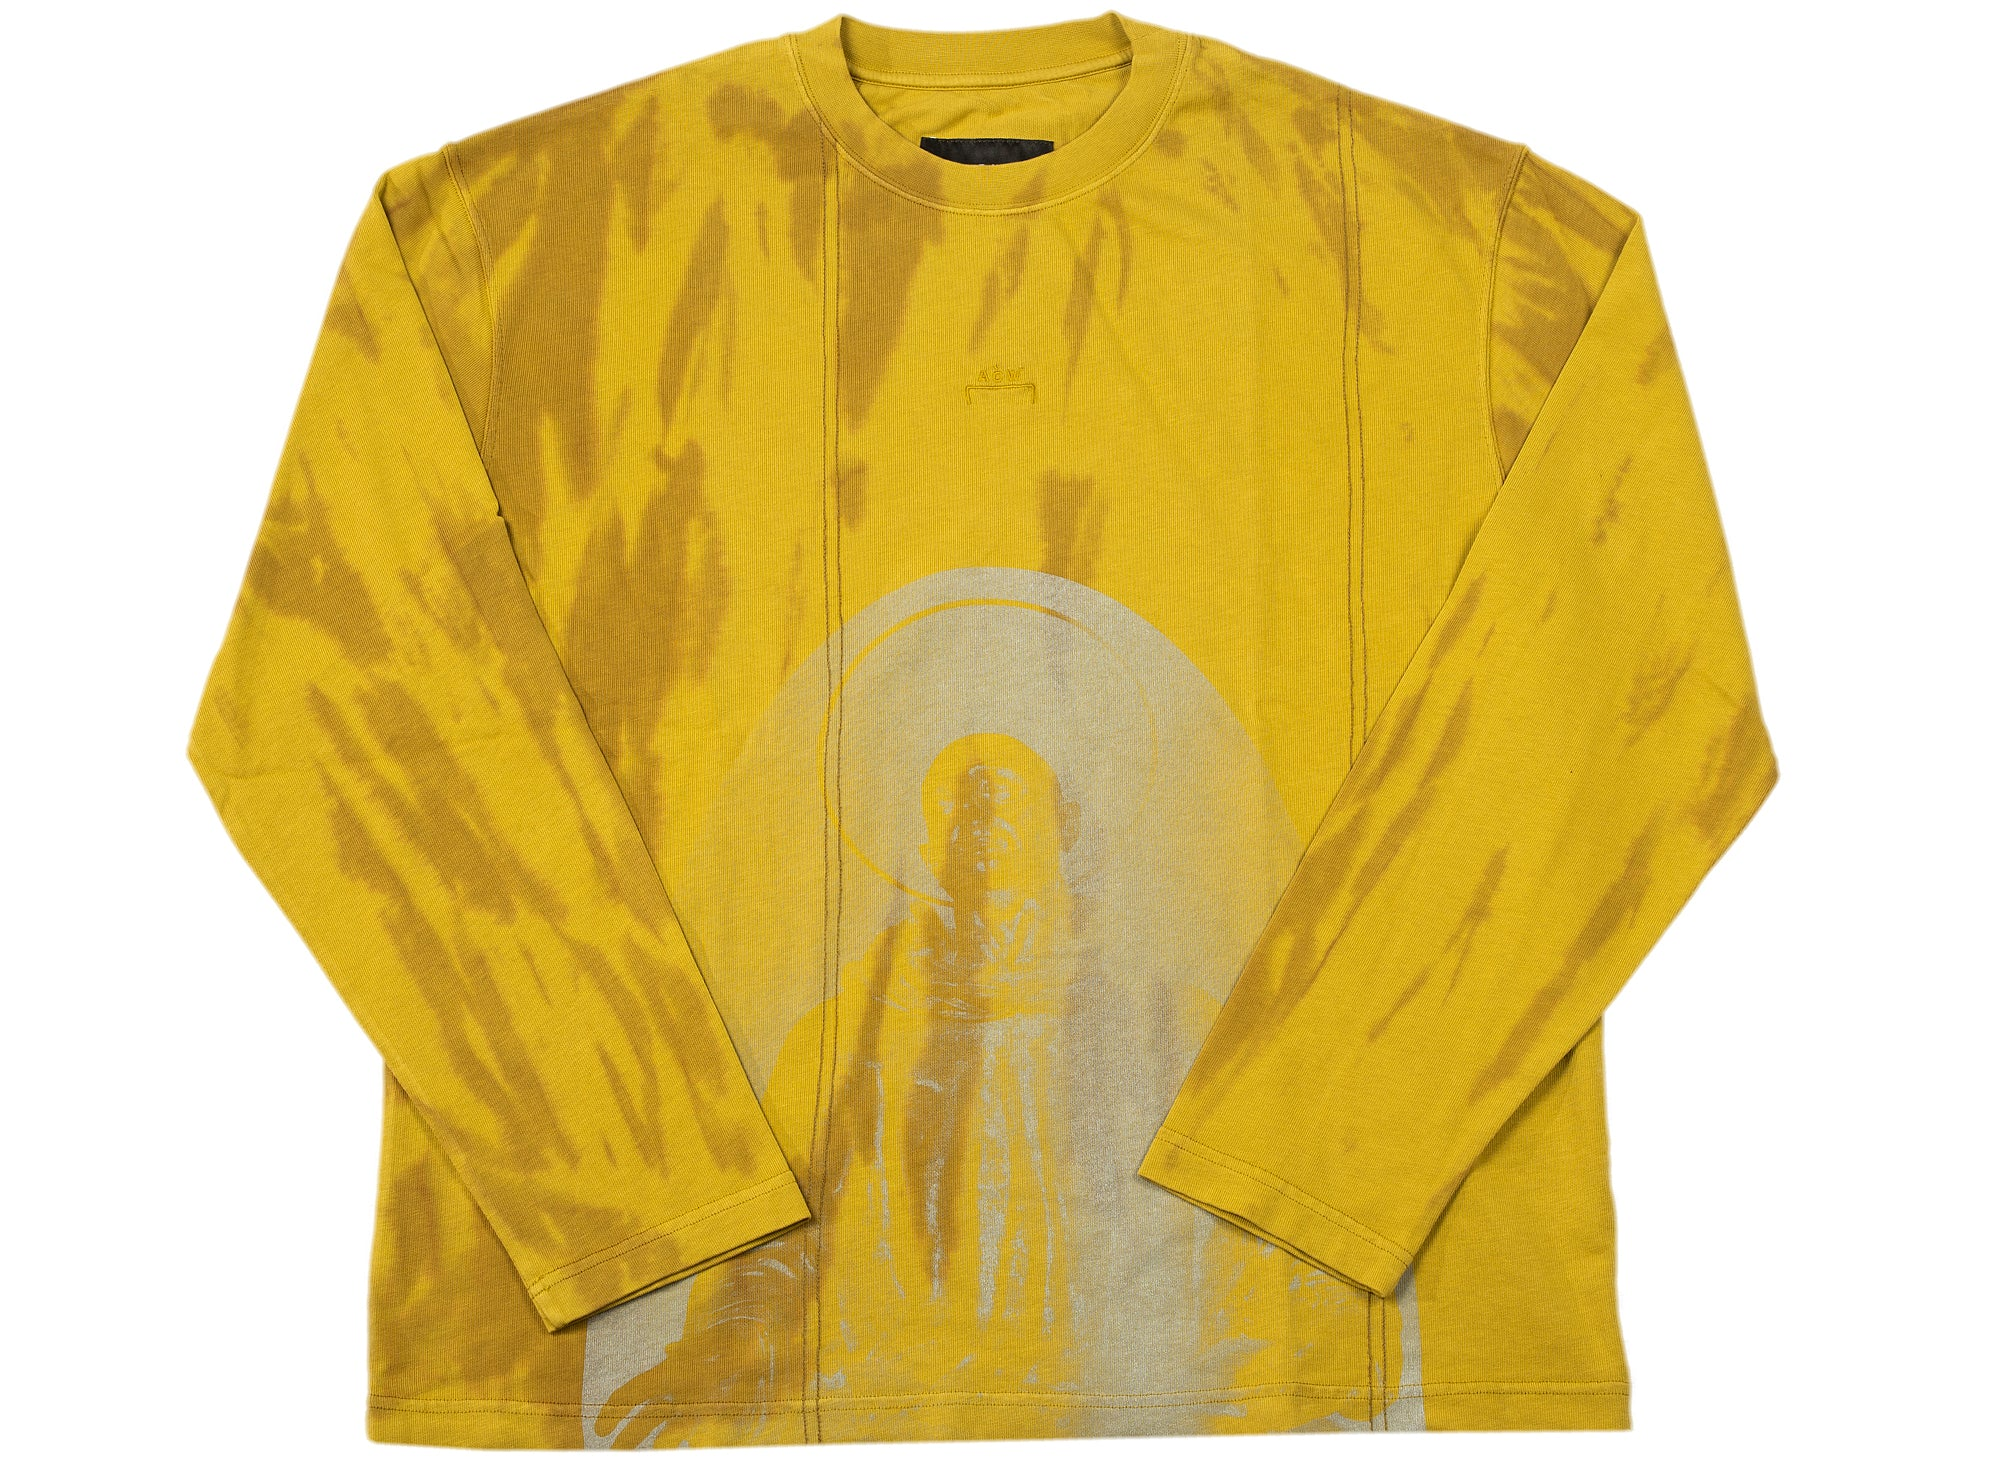 A-COLD-WALL* Knitted Overdyed Print Long Sleeve Tee in Chartreuse xld